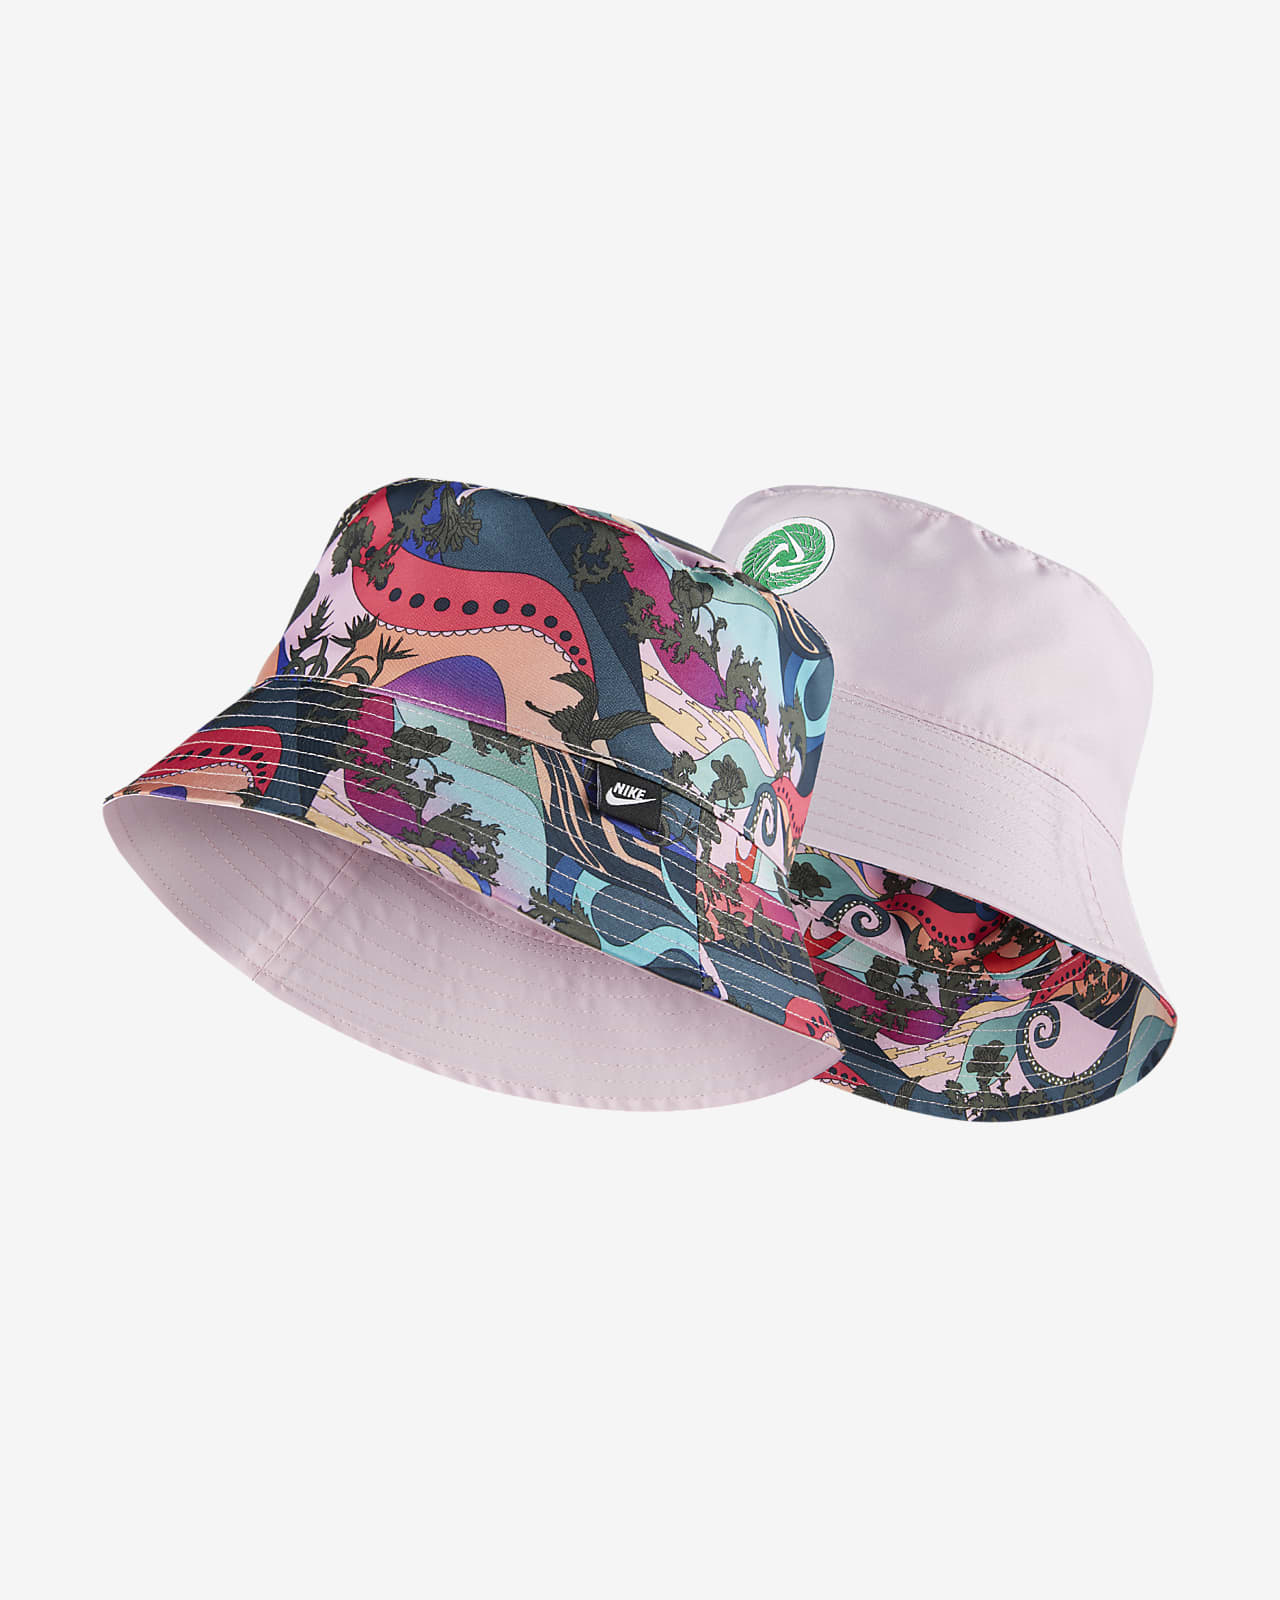 Nike Icon Clash Reversible Bucket Hat Fischerhut